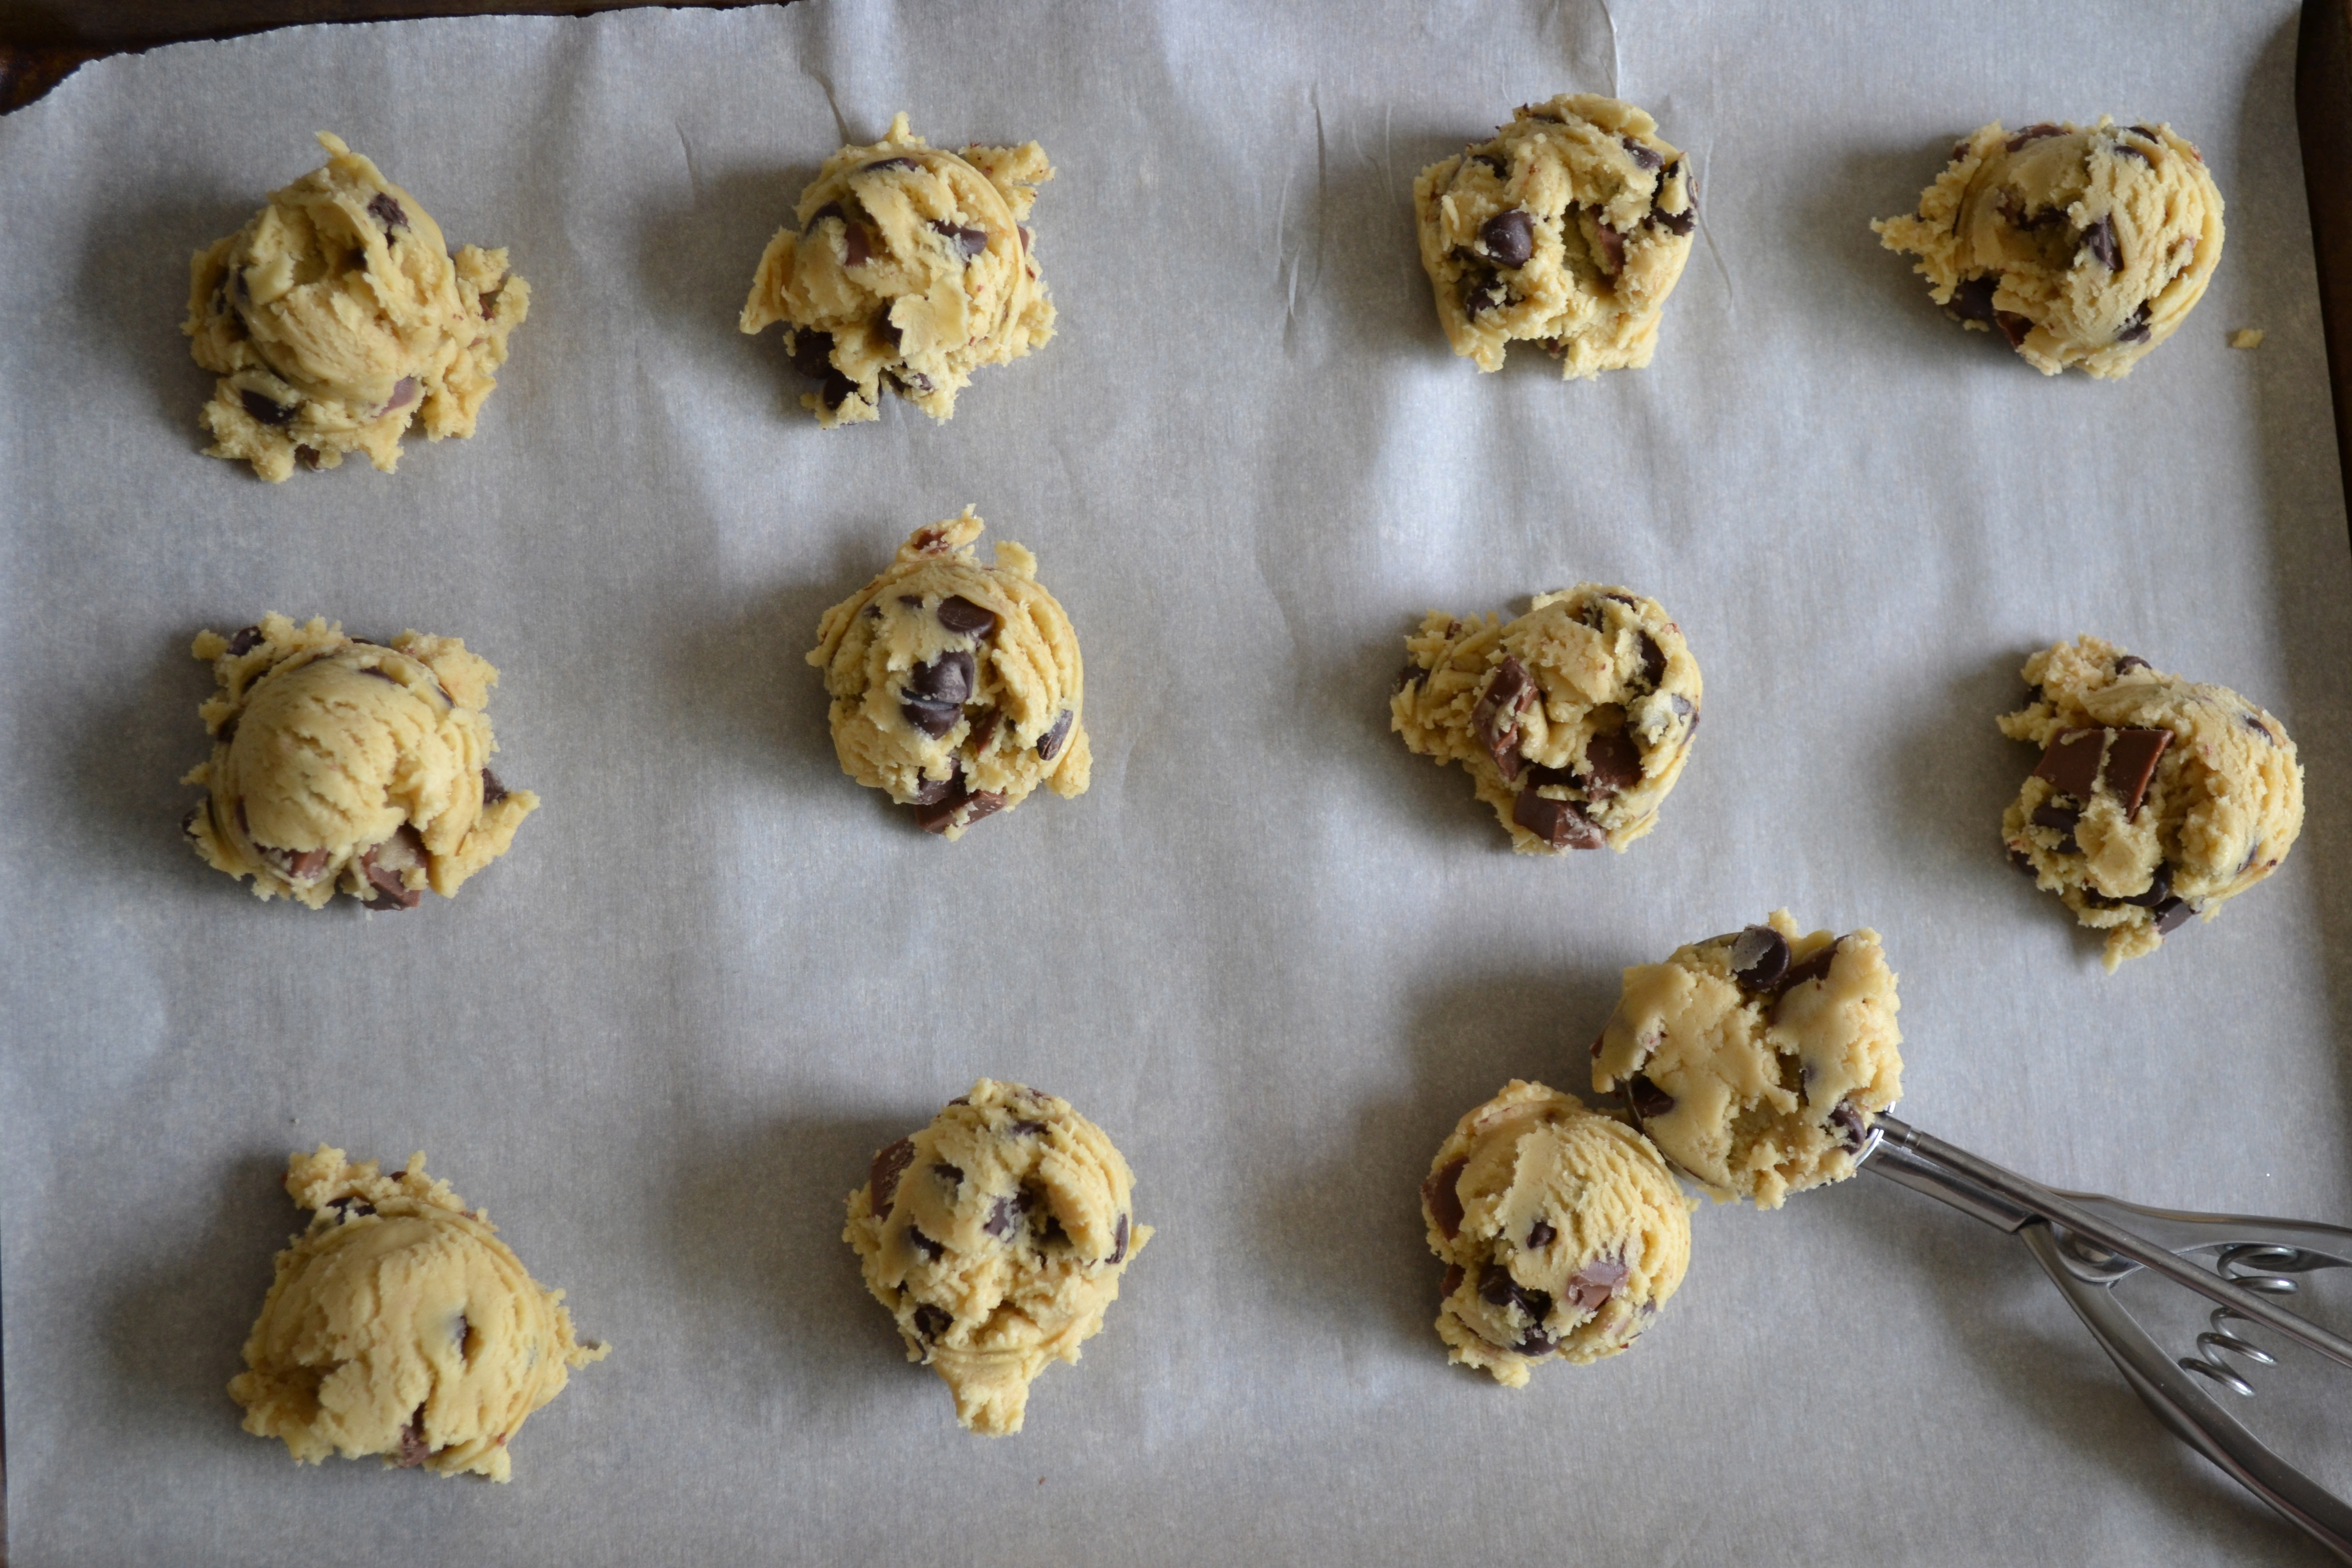 Savory Sweet Life's Chocolate Chip Cookies – Warm Vanilla Sugar